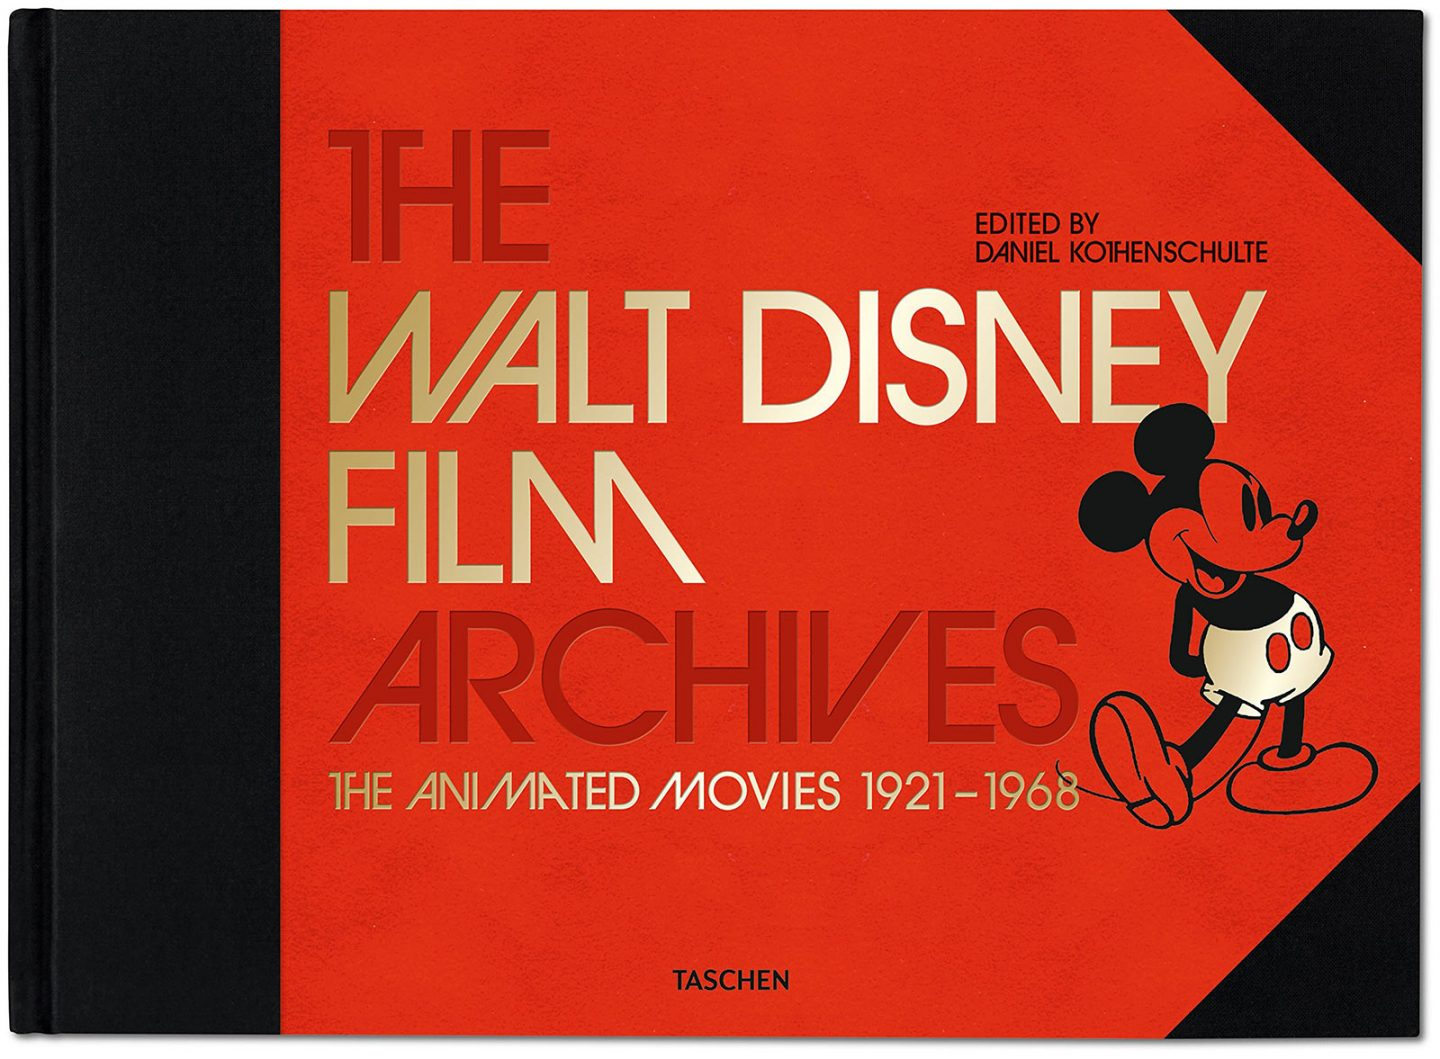 Taschen Is Creating The Ultimate Classic Disney Animation Art Book (Pre-Order)